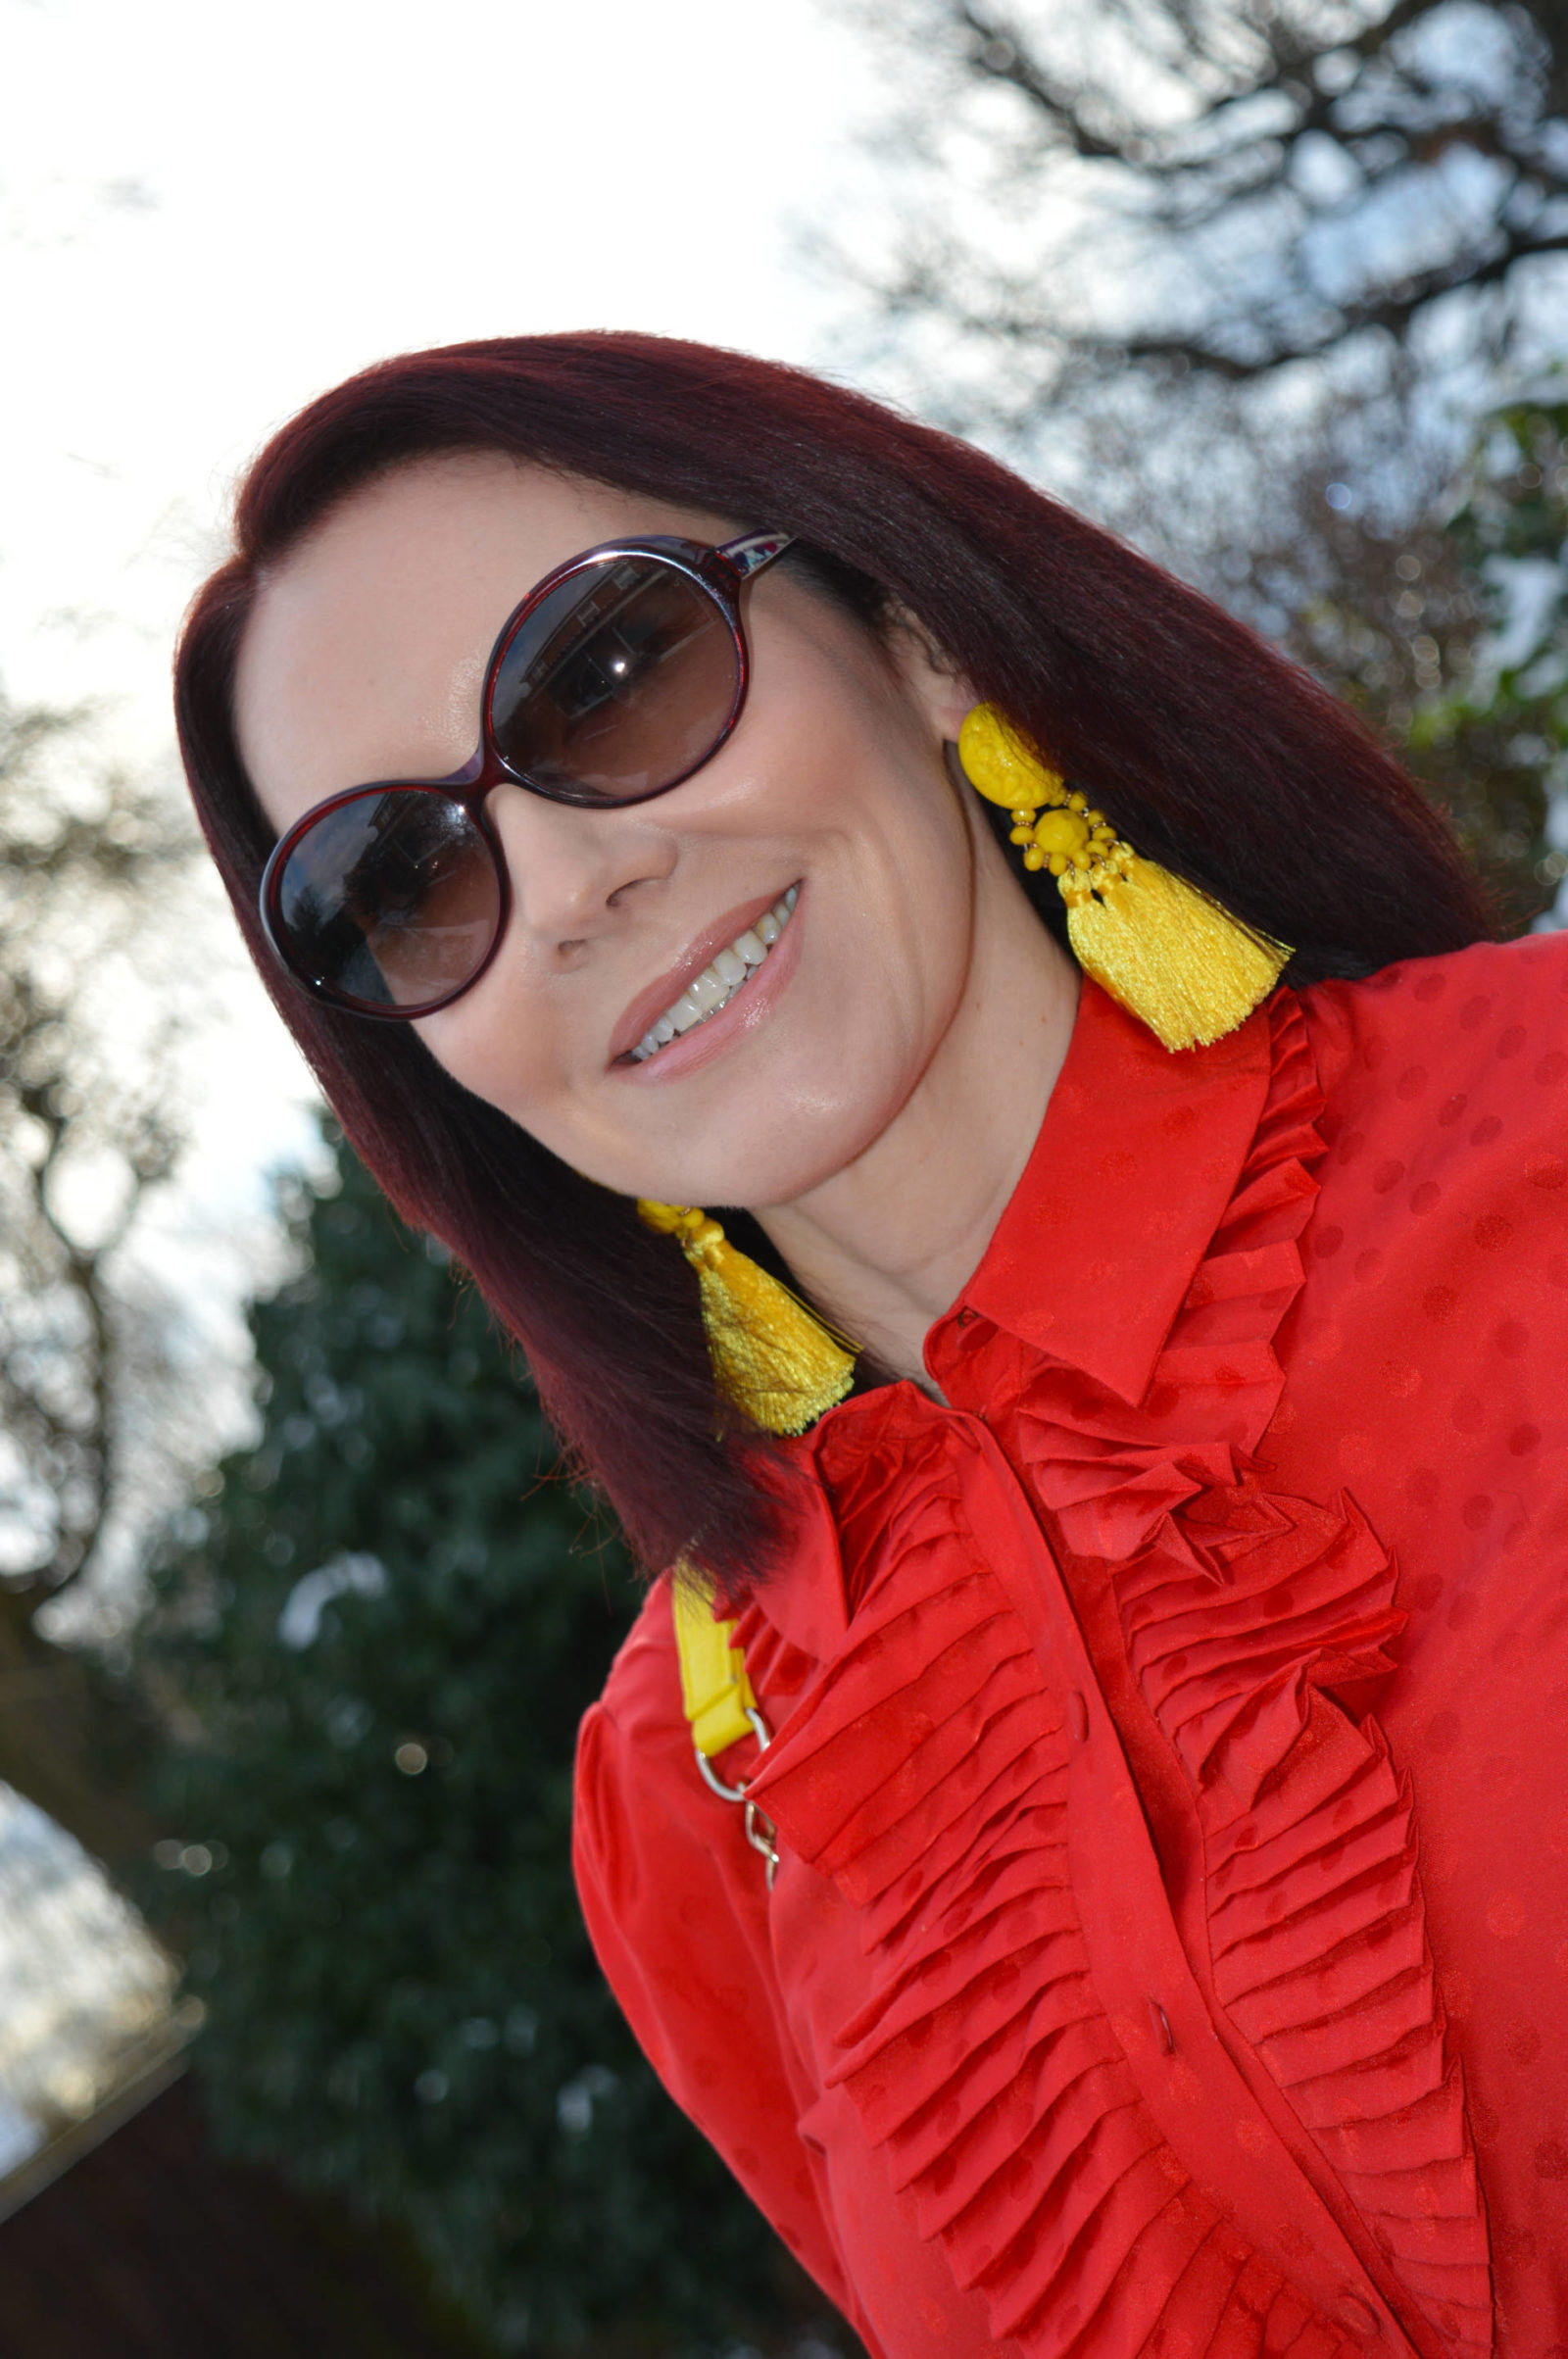 Stylish Mondays - Ladies in Red, And Other Stories red frill blouse, yellow tassel earrings